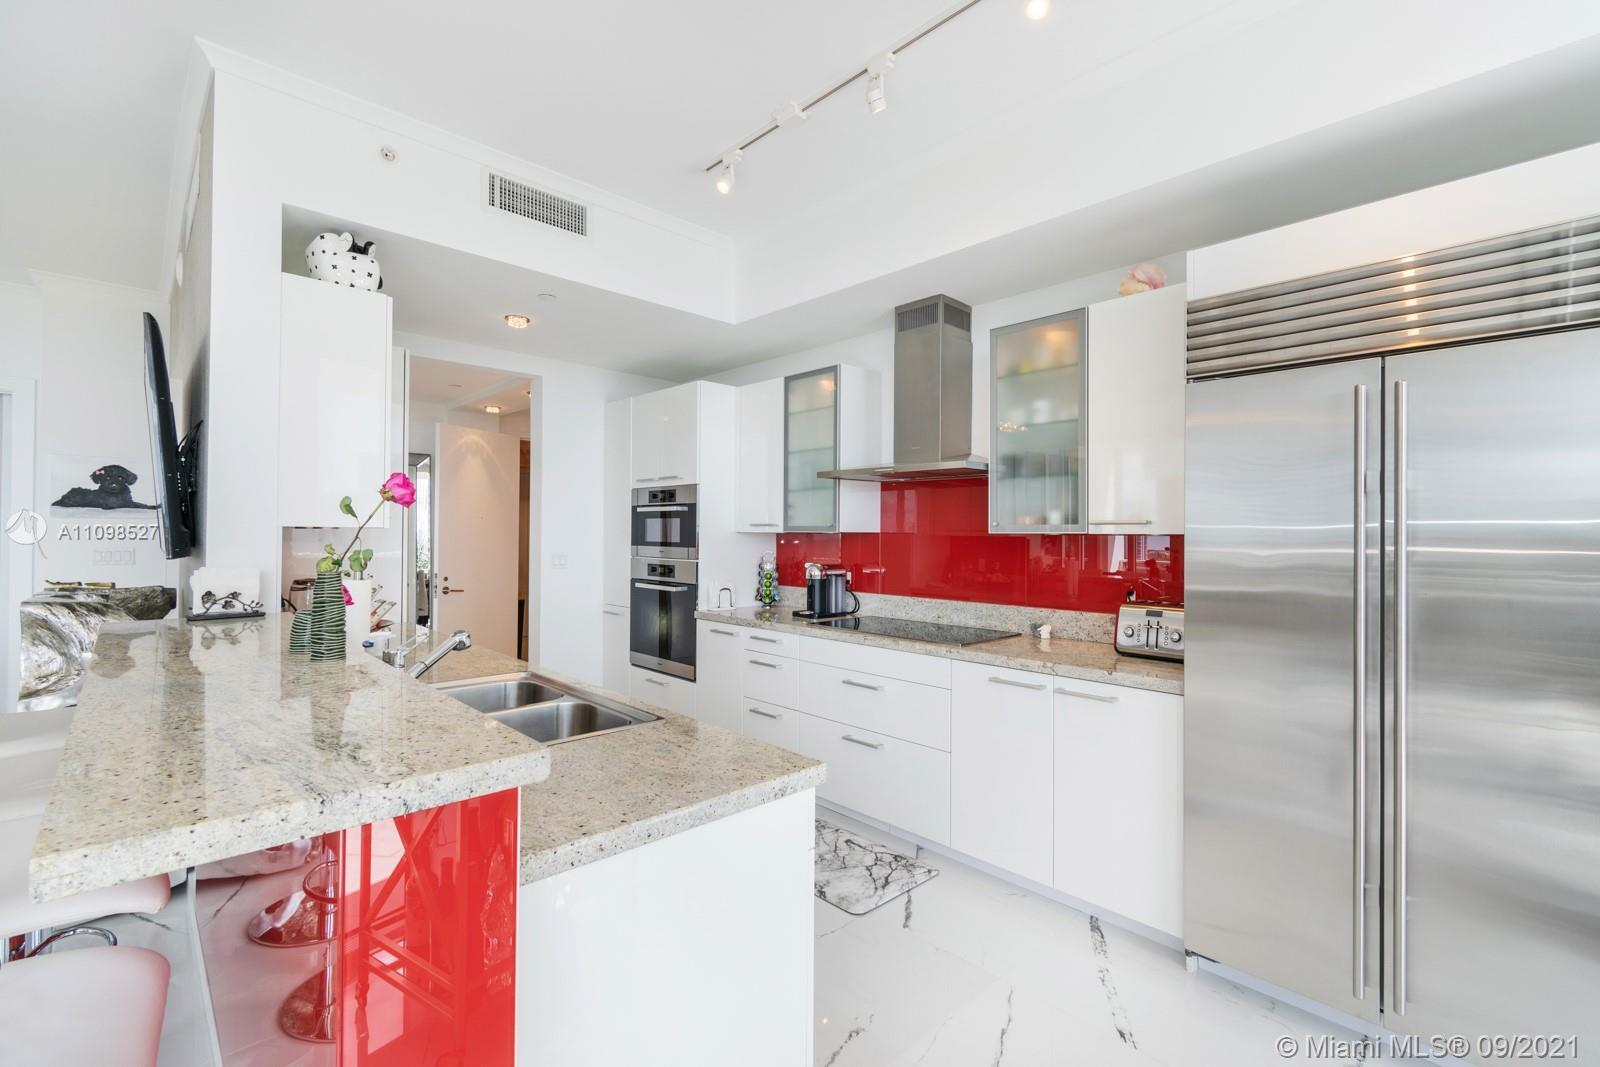 LIVE THE FIVE STAR RESORT LIFESTYLE ON WILLIAMS ISLAND IN THIS COMPLETELY RENOVATED RESIDENCE IN WIL